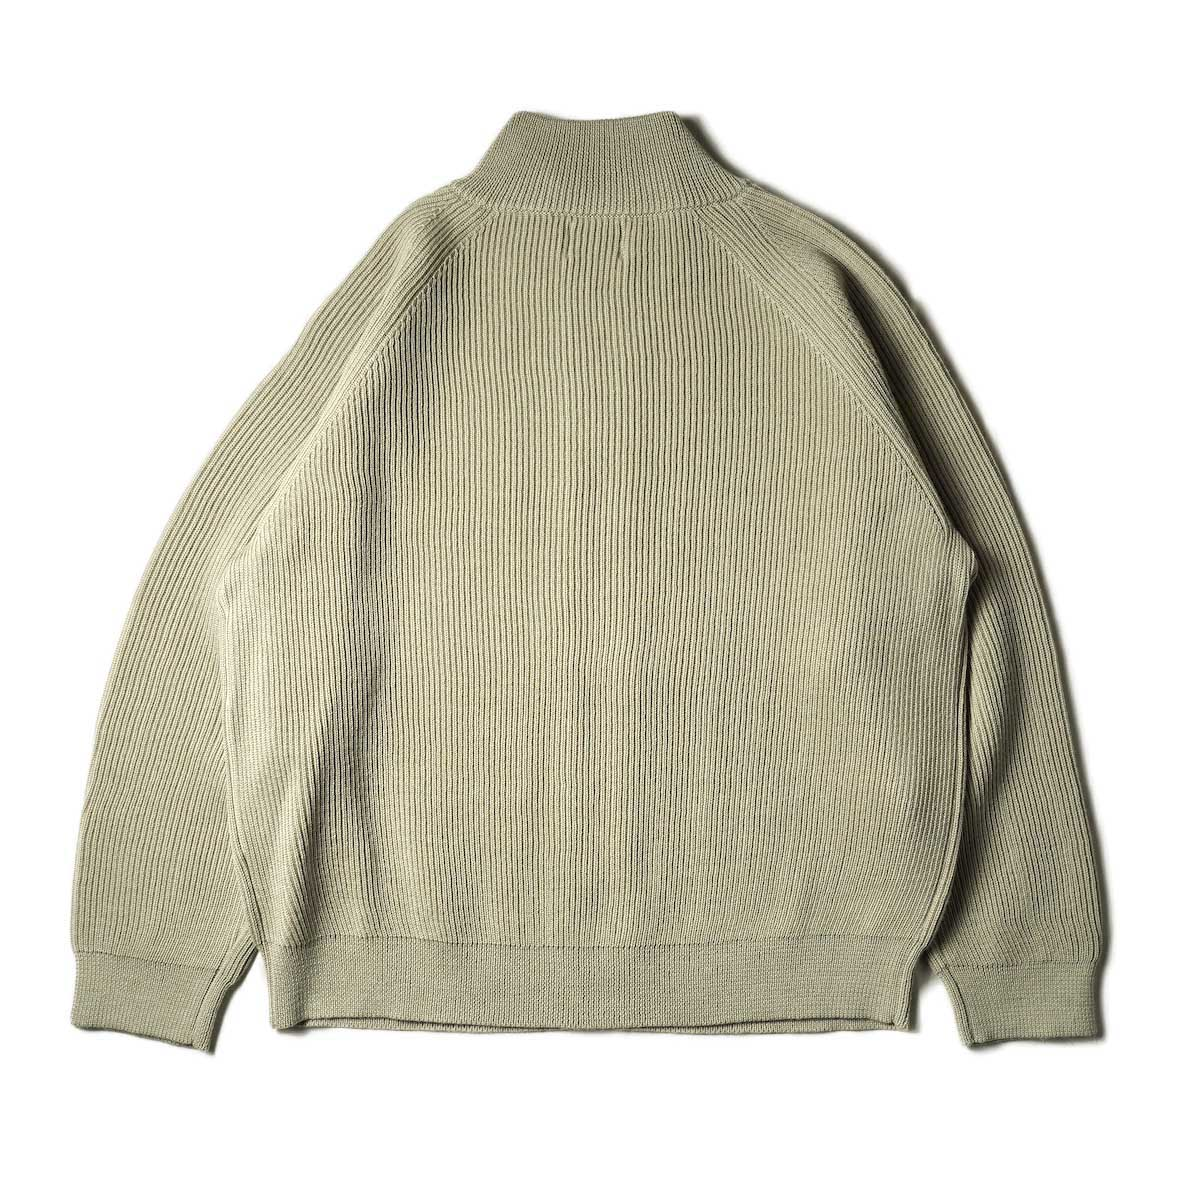 EVCON / DRIVERS SWEATER (Oatmeal) 背面